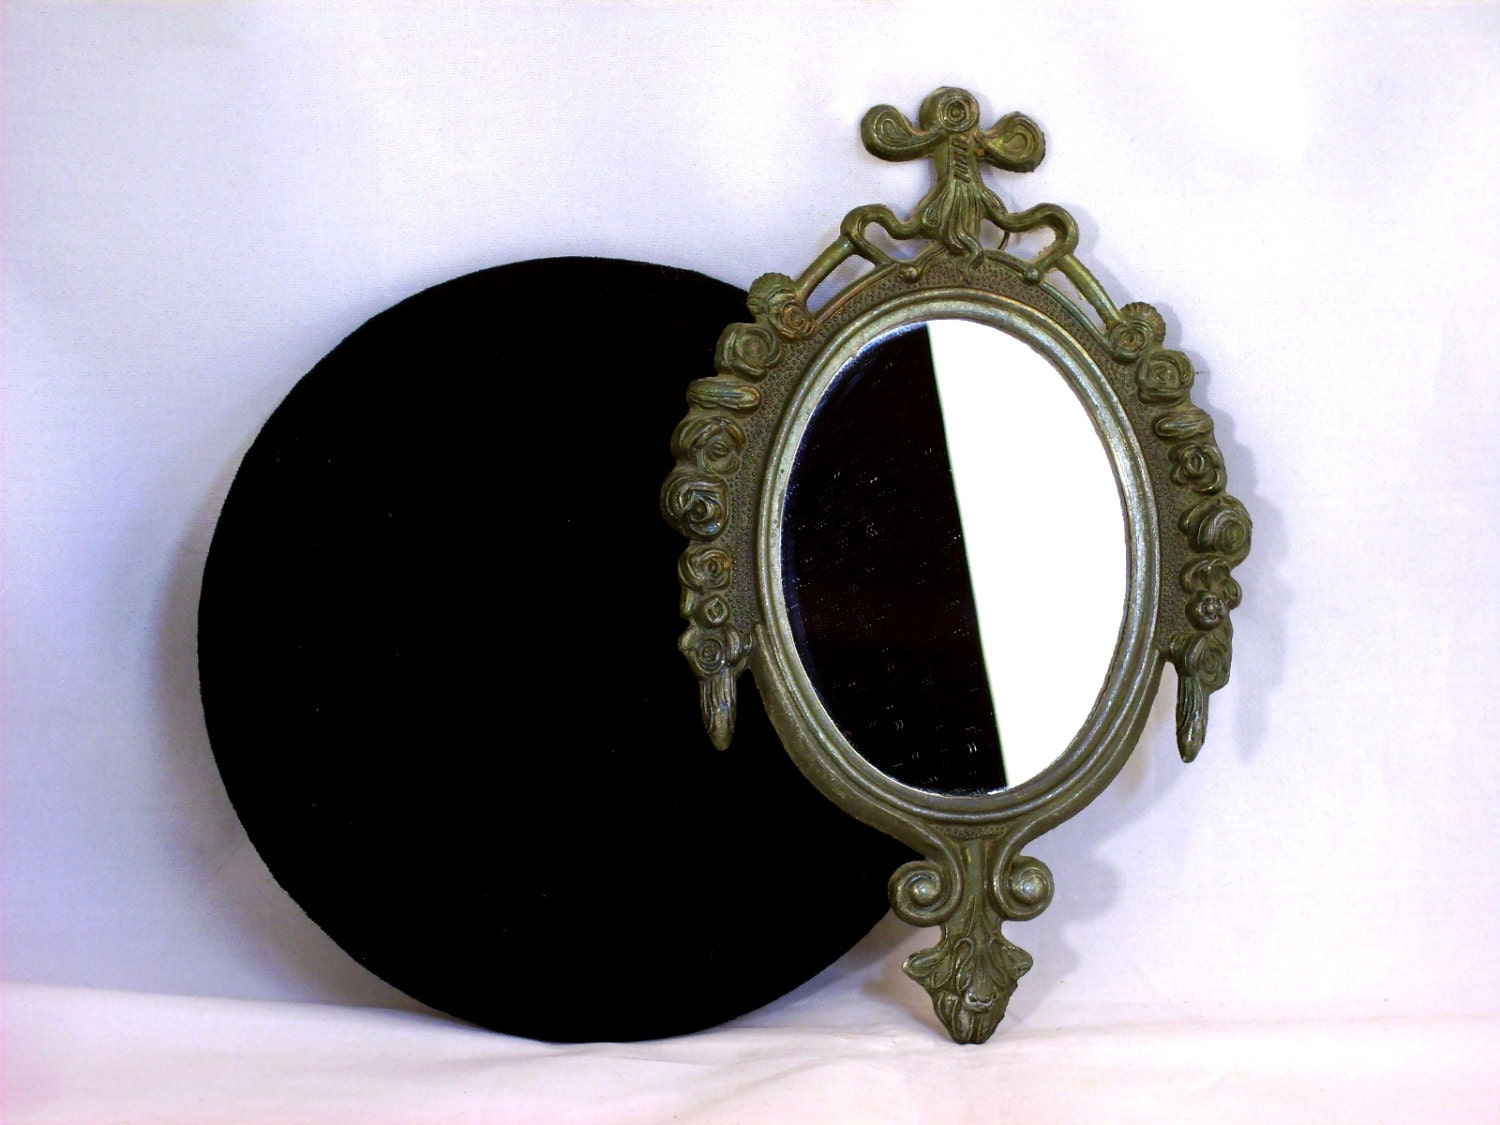 Vintage Vanity Mirror Small Oval Ornate Made In Italy Metal